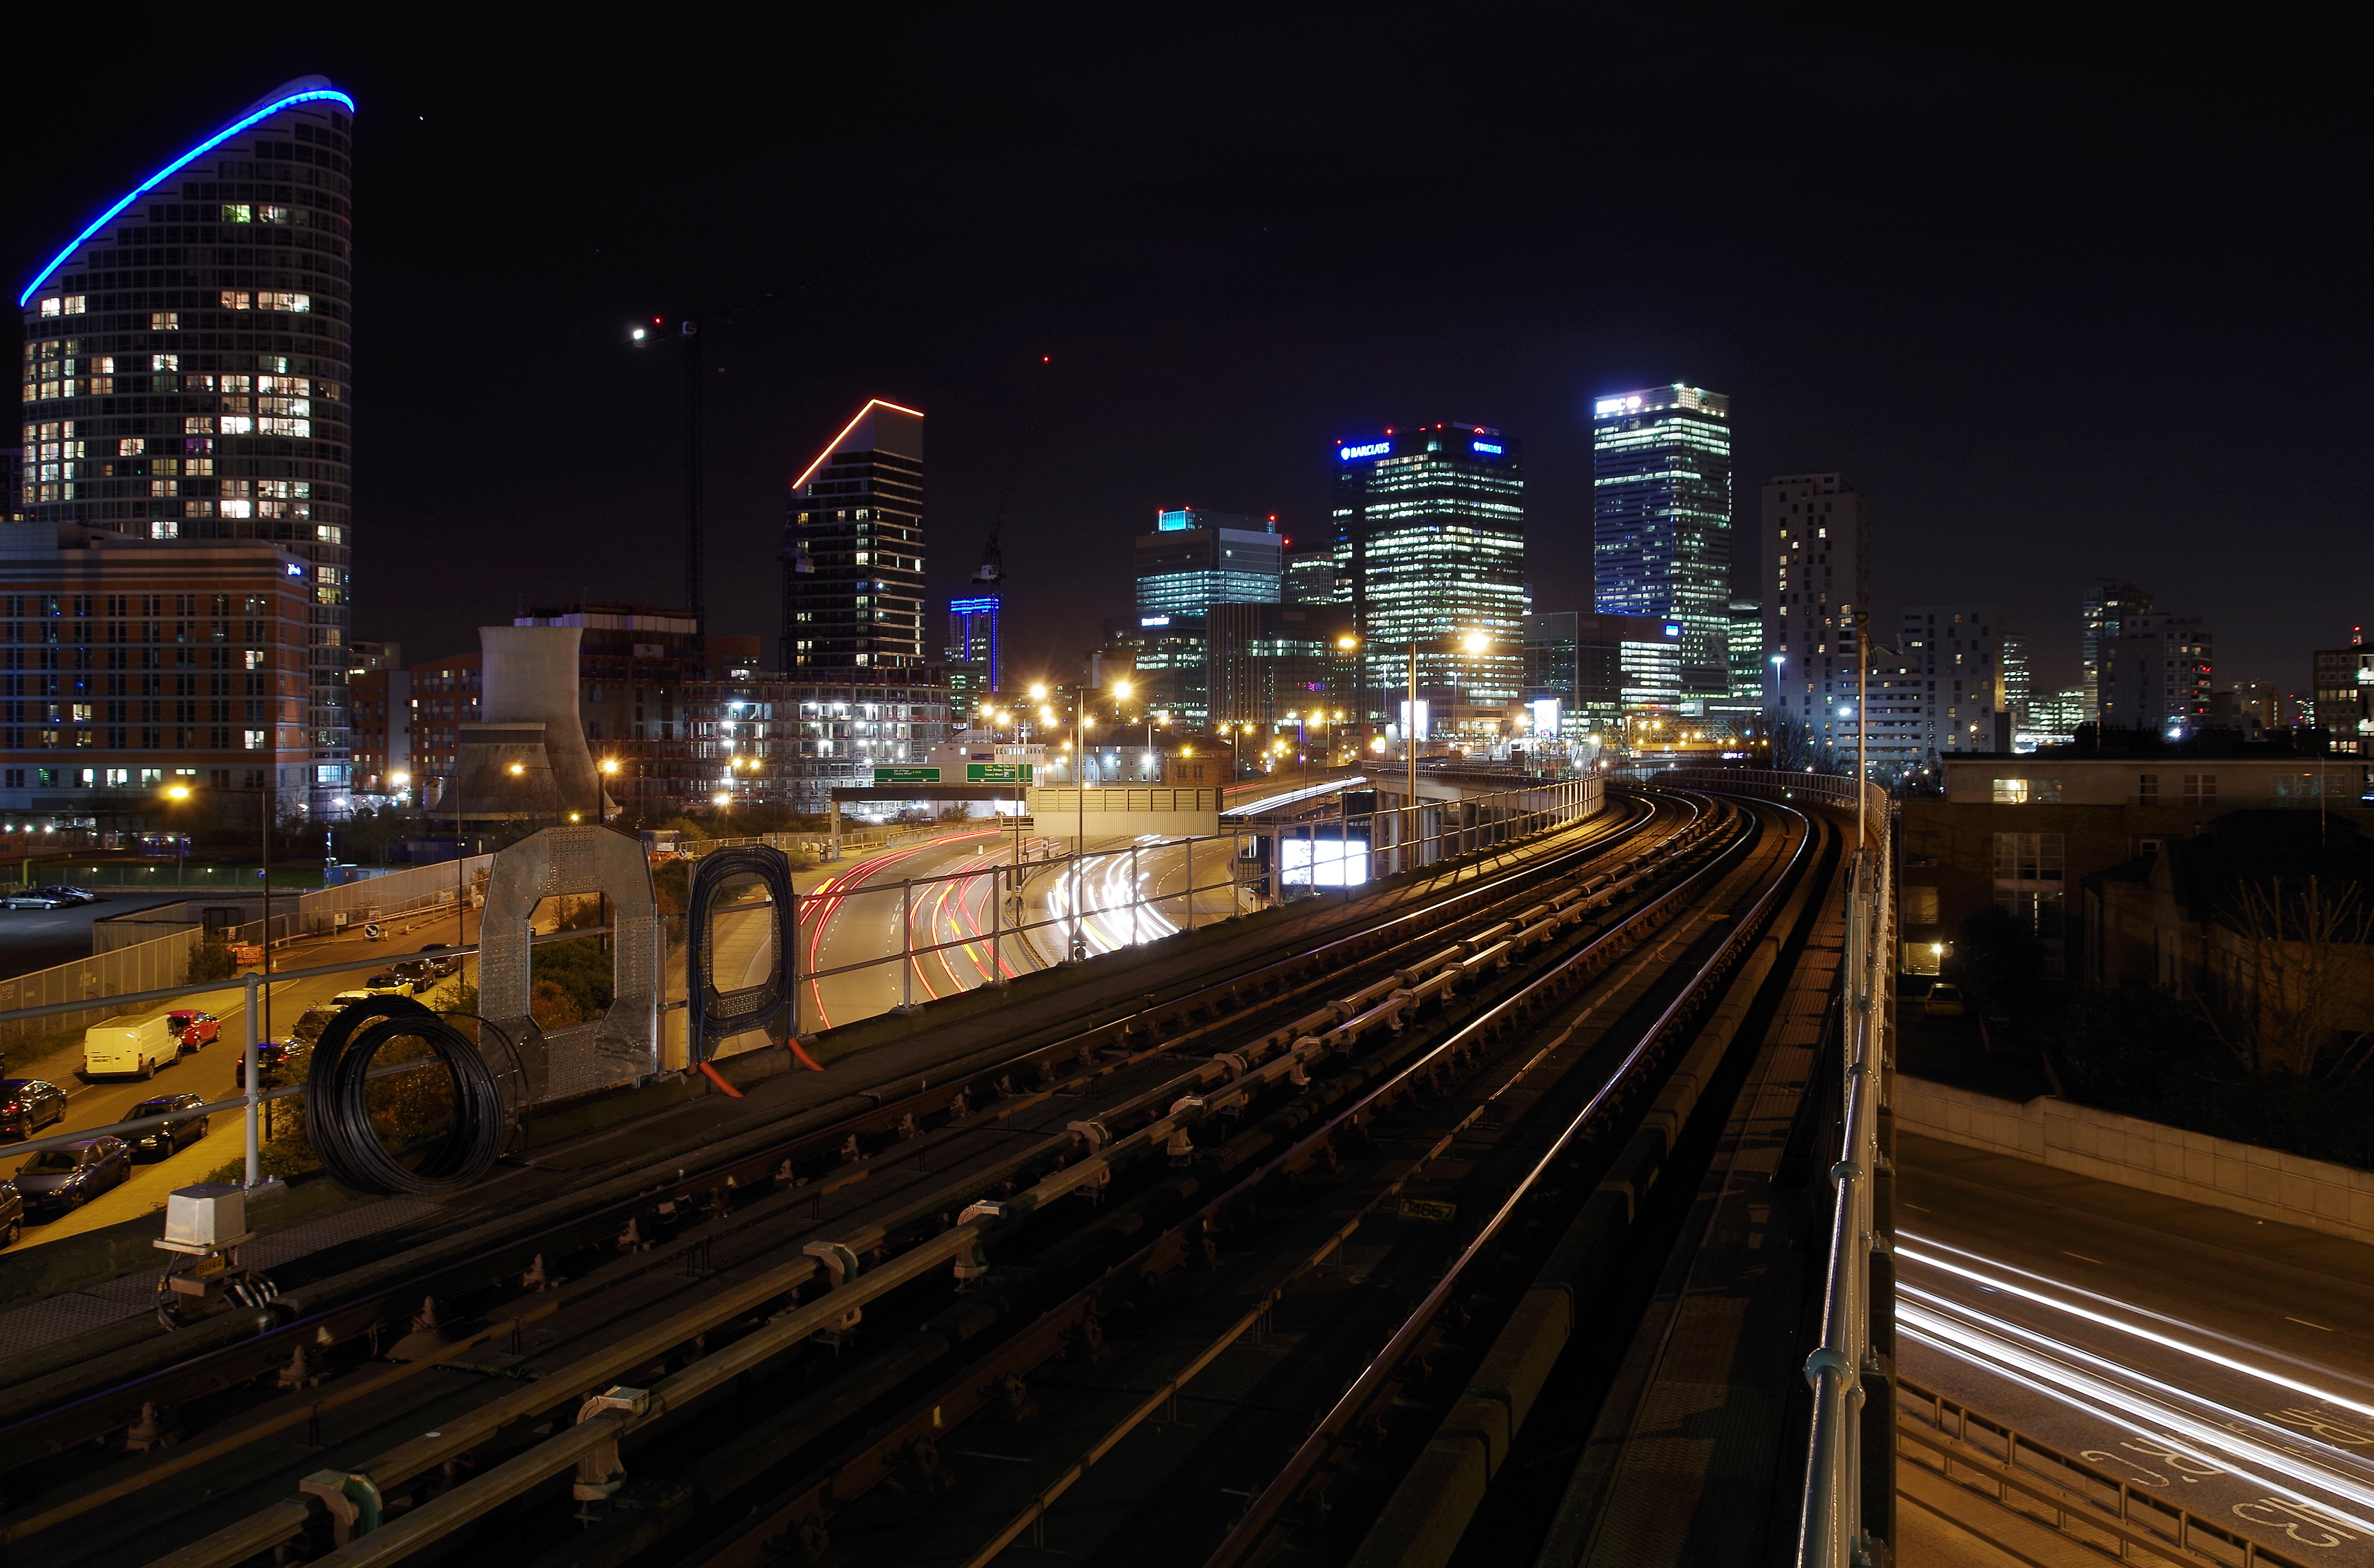 East India DLR station MMB 03